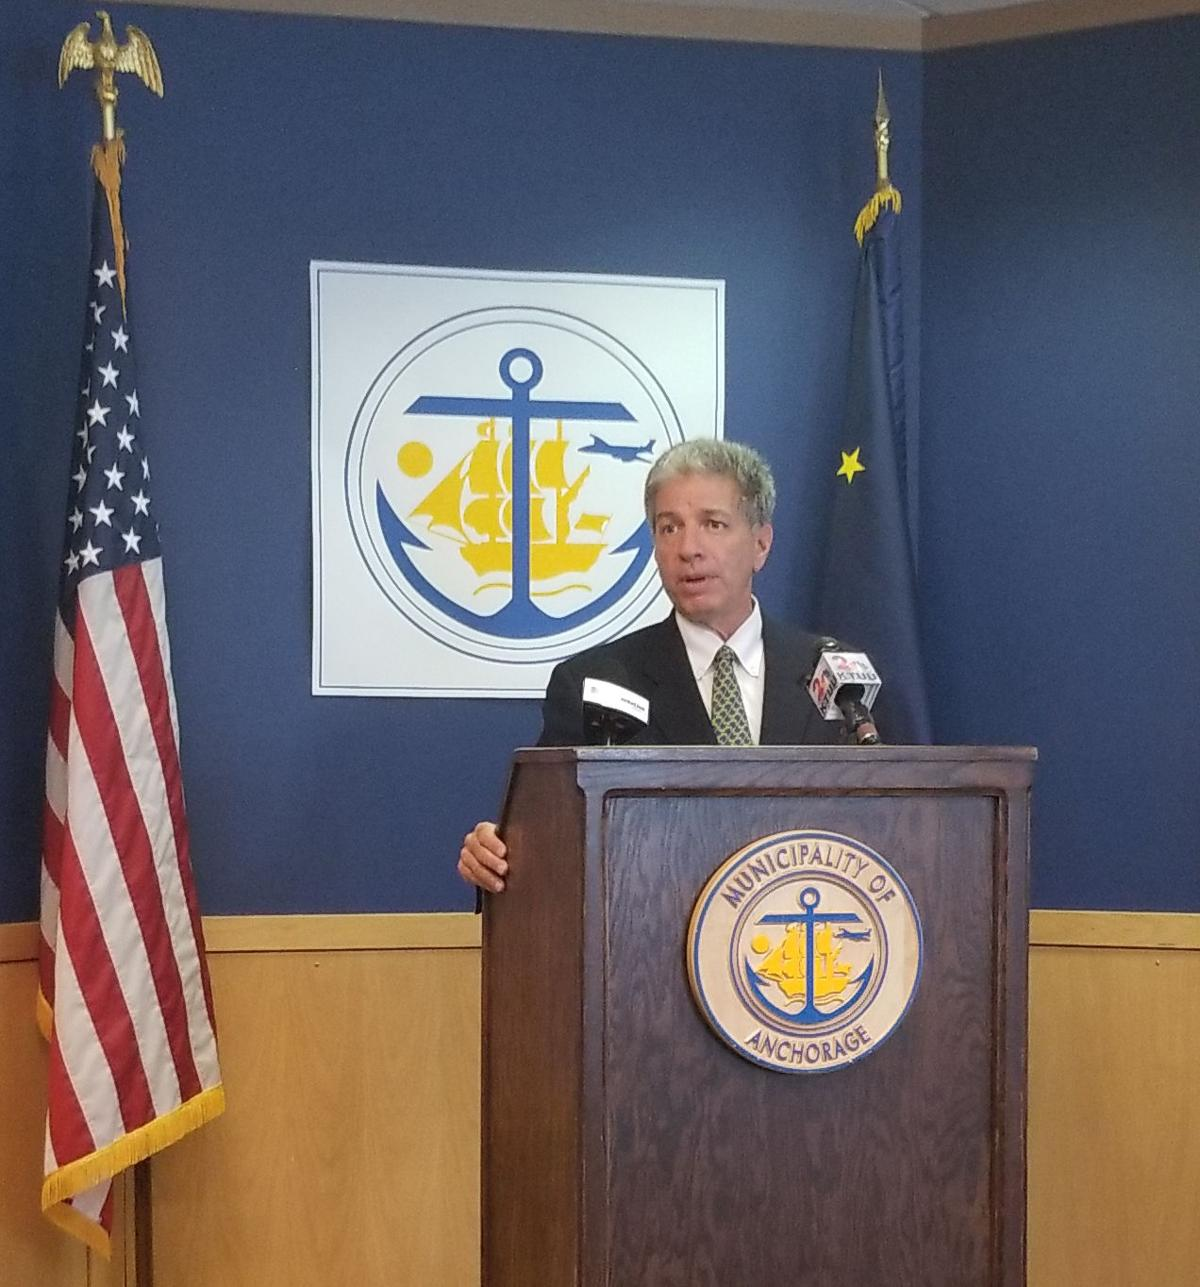 Mayor Berkowitz On The Eve Of His Emergency Declaration The Safety Net Is Now The Street News Anchoragepress Com